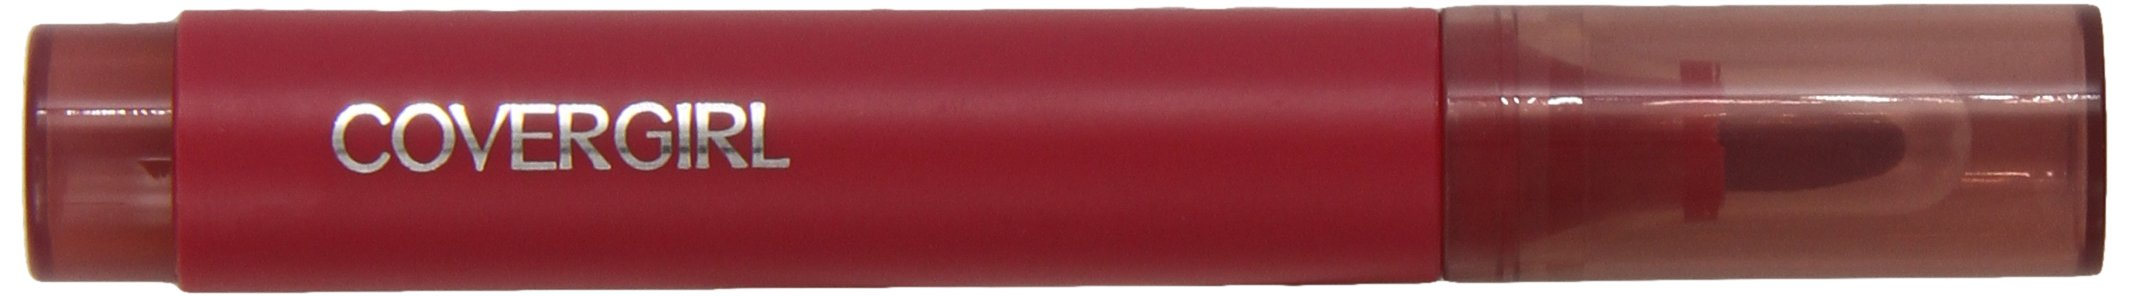 CoverGirl Lip Products CoverGirl Outlast Lipstain, Wild Berry Wink 440, 0.09-Ounce by COVERGIRL